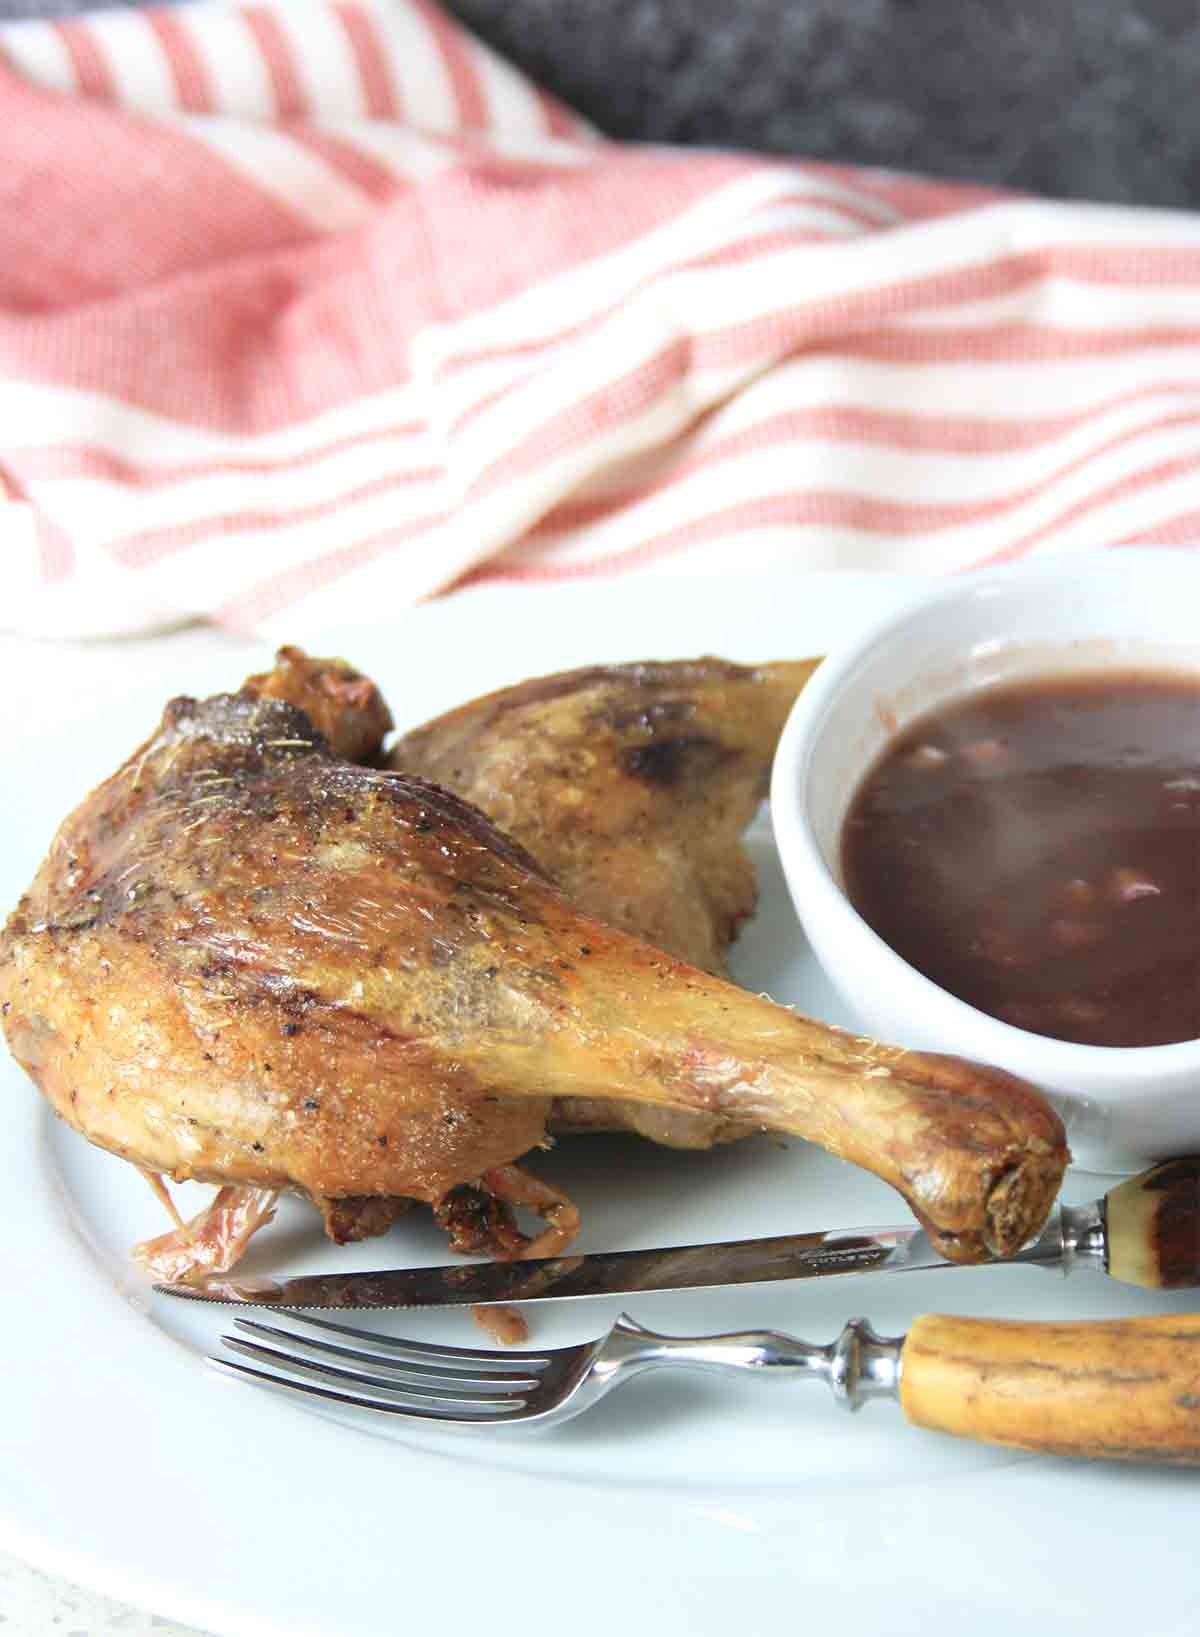 duck confit with pot of sauce and cutlery.